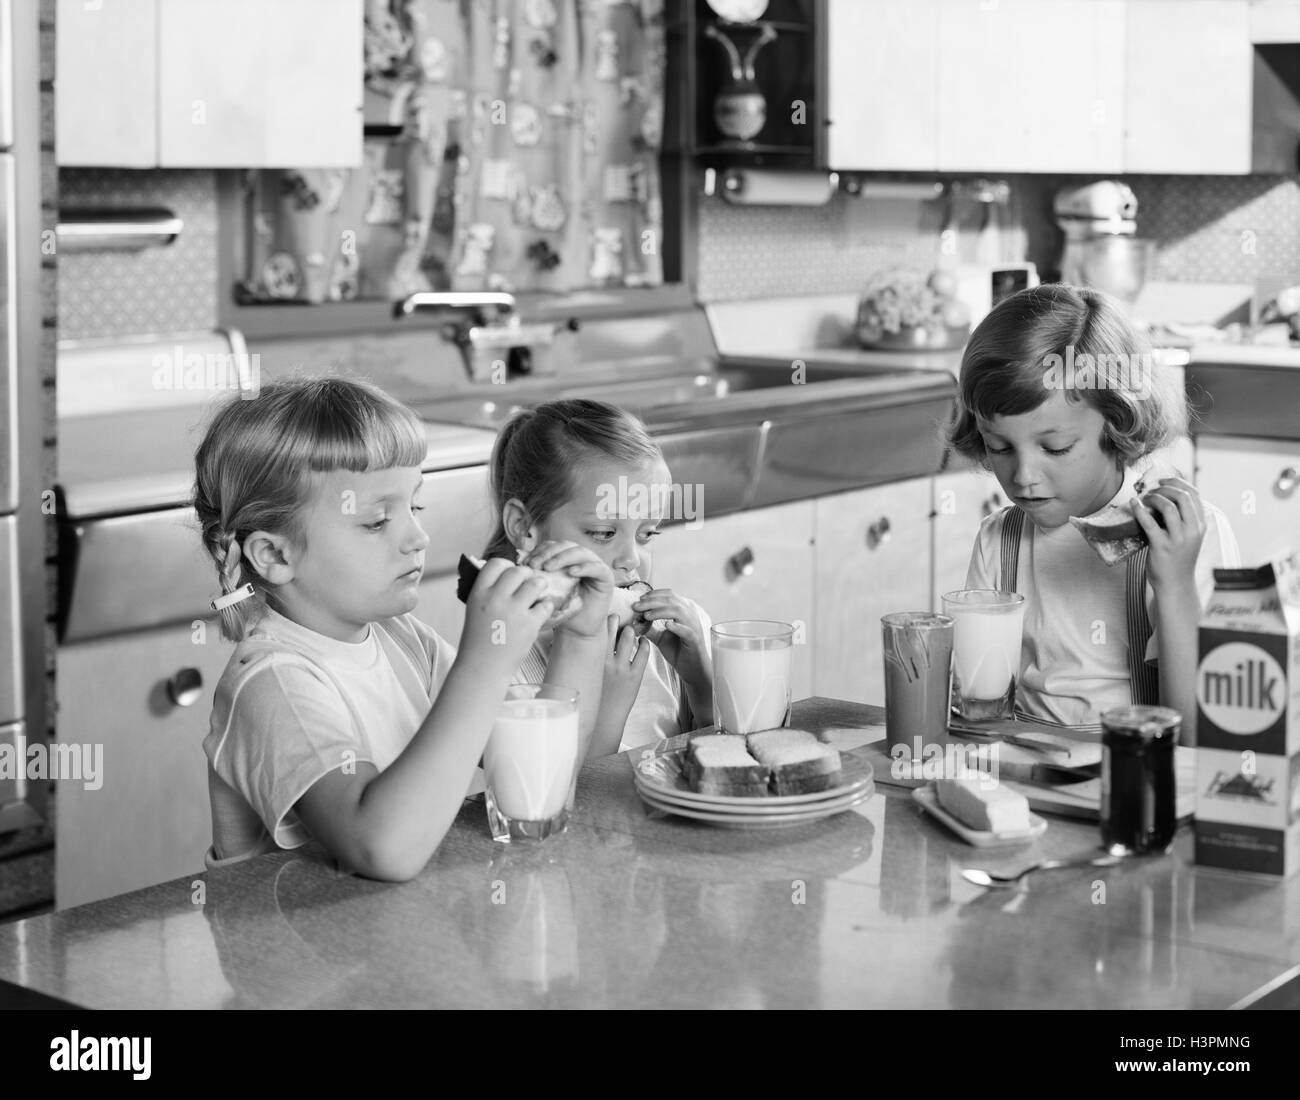 1950s three girls sisters eating lunch at kitchen table peanut butter H3PMNG